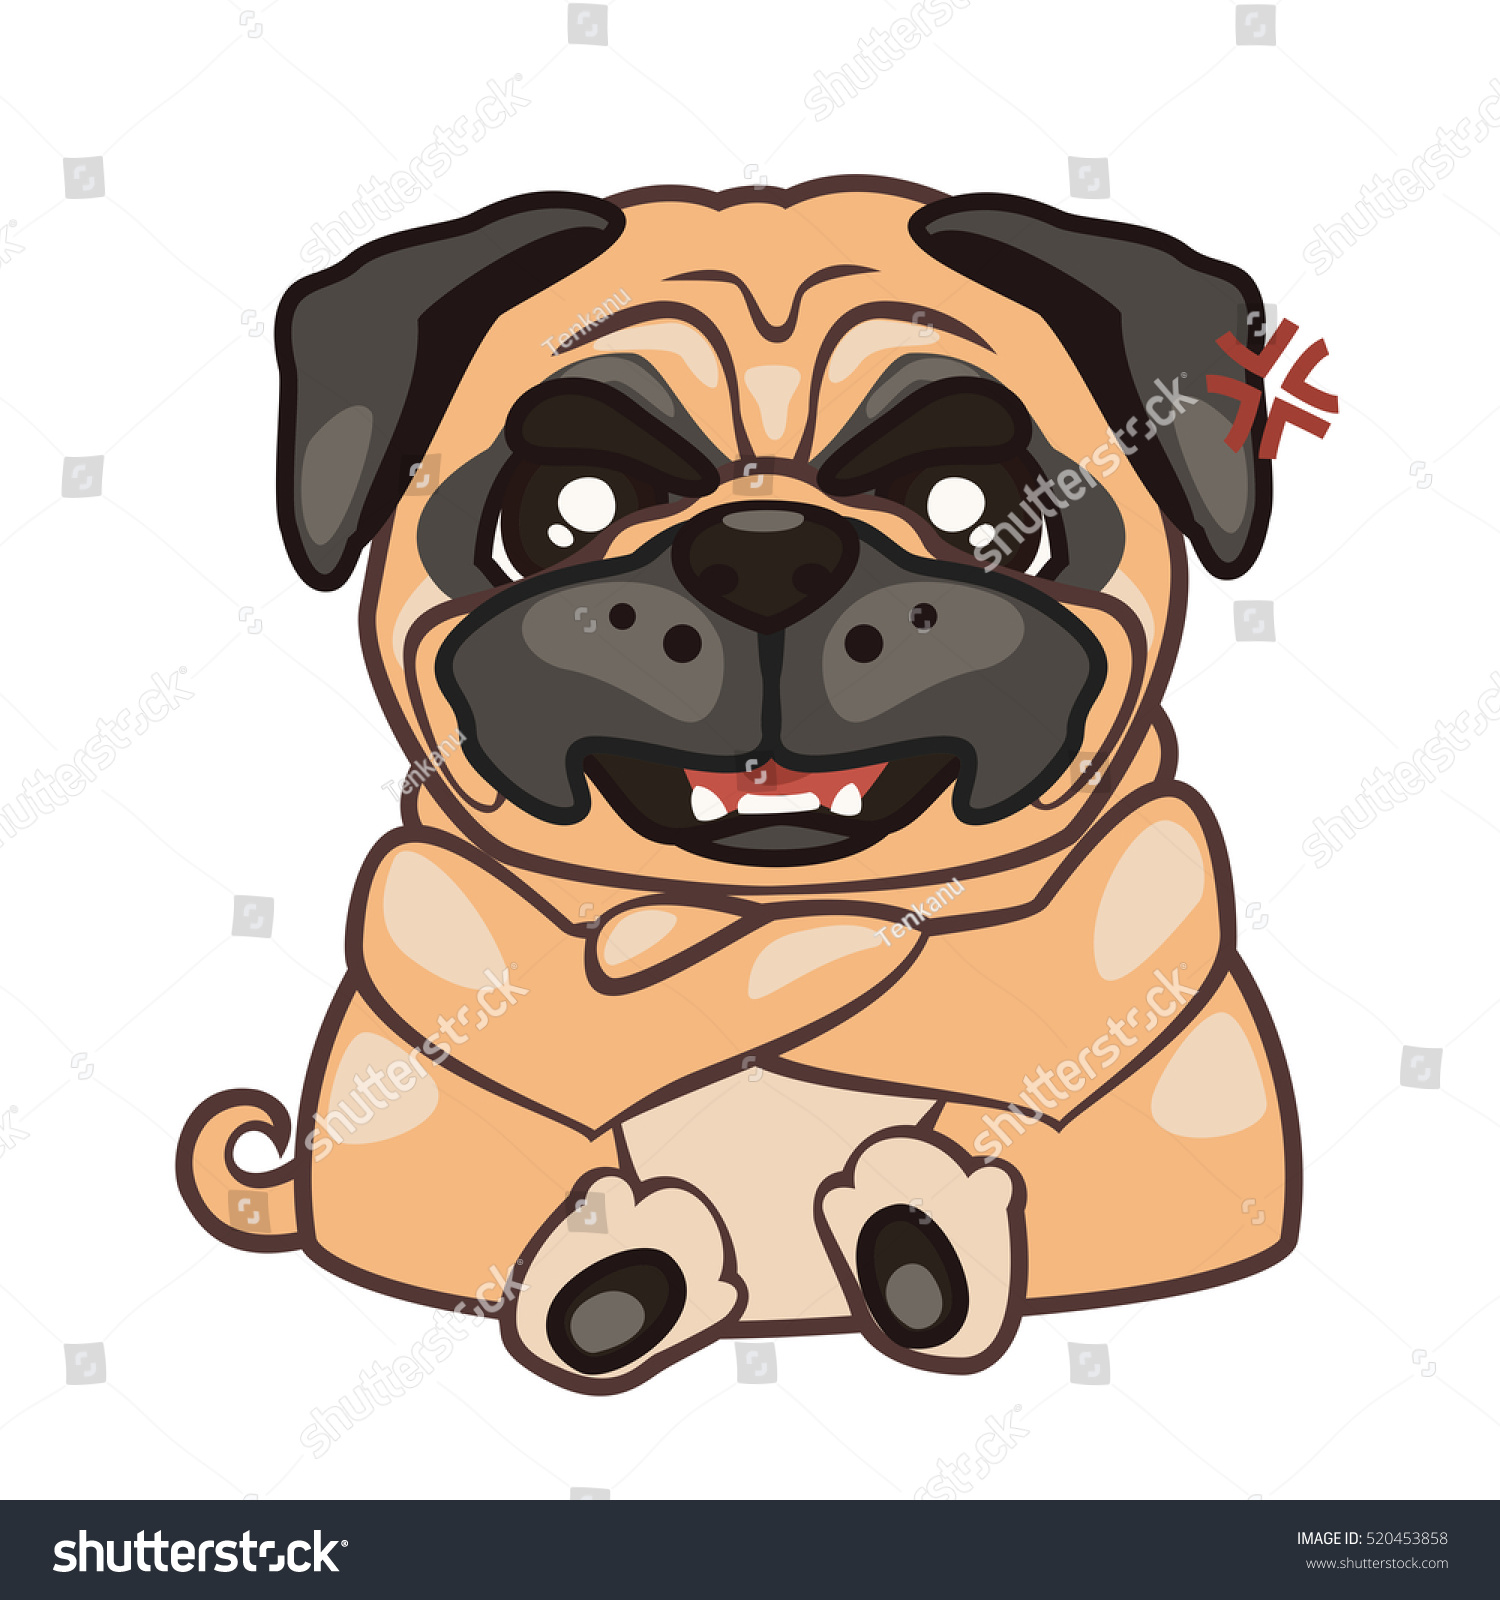 Dog Sitting Angry Sticker Pug Vector Vector de stock (libre de ...